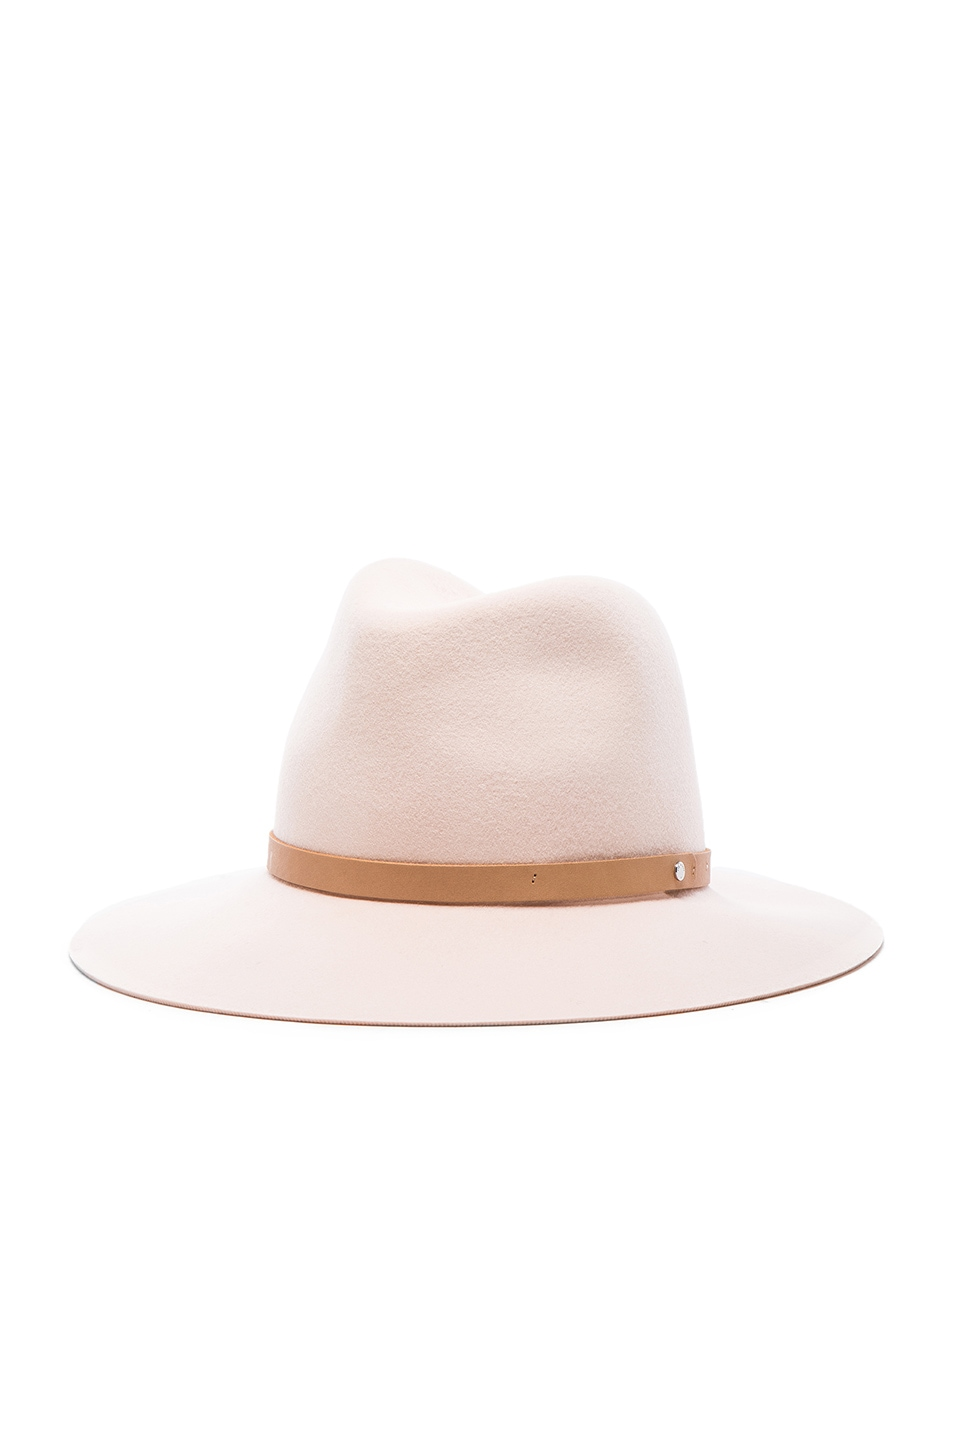 Image 2 of Rag & Bone Floppy Brim Fedora Hat in Shell